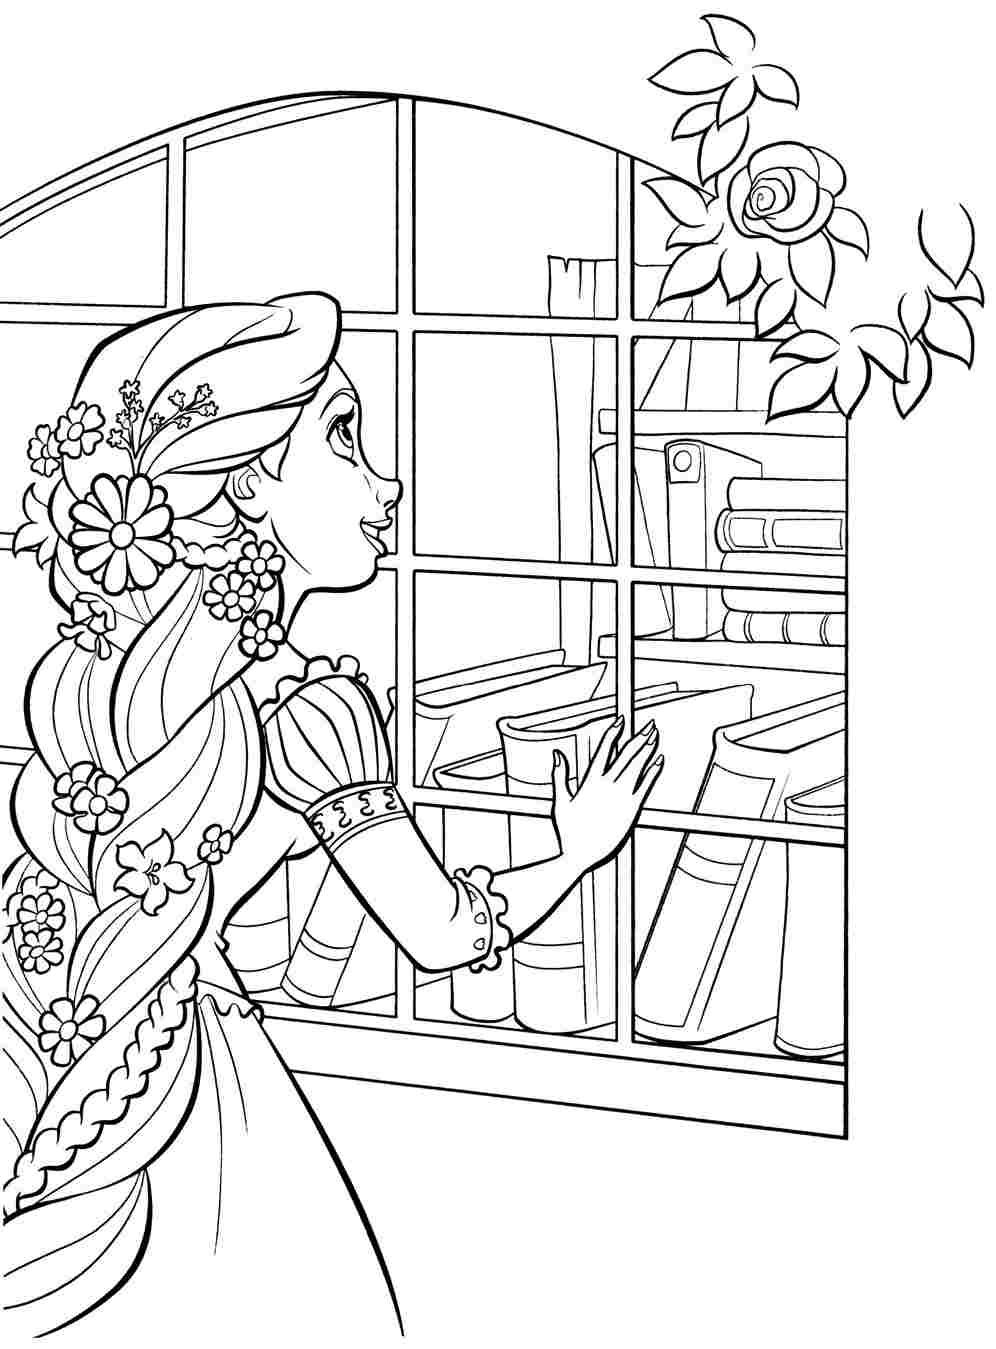 printable free coloring pages disney princess tangled rapunzel for